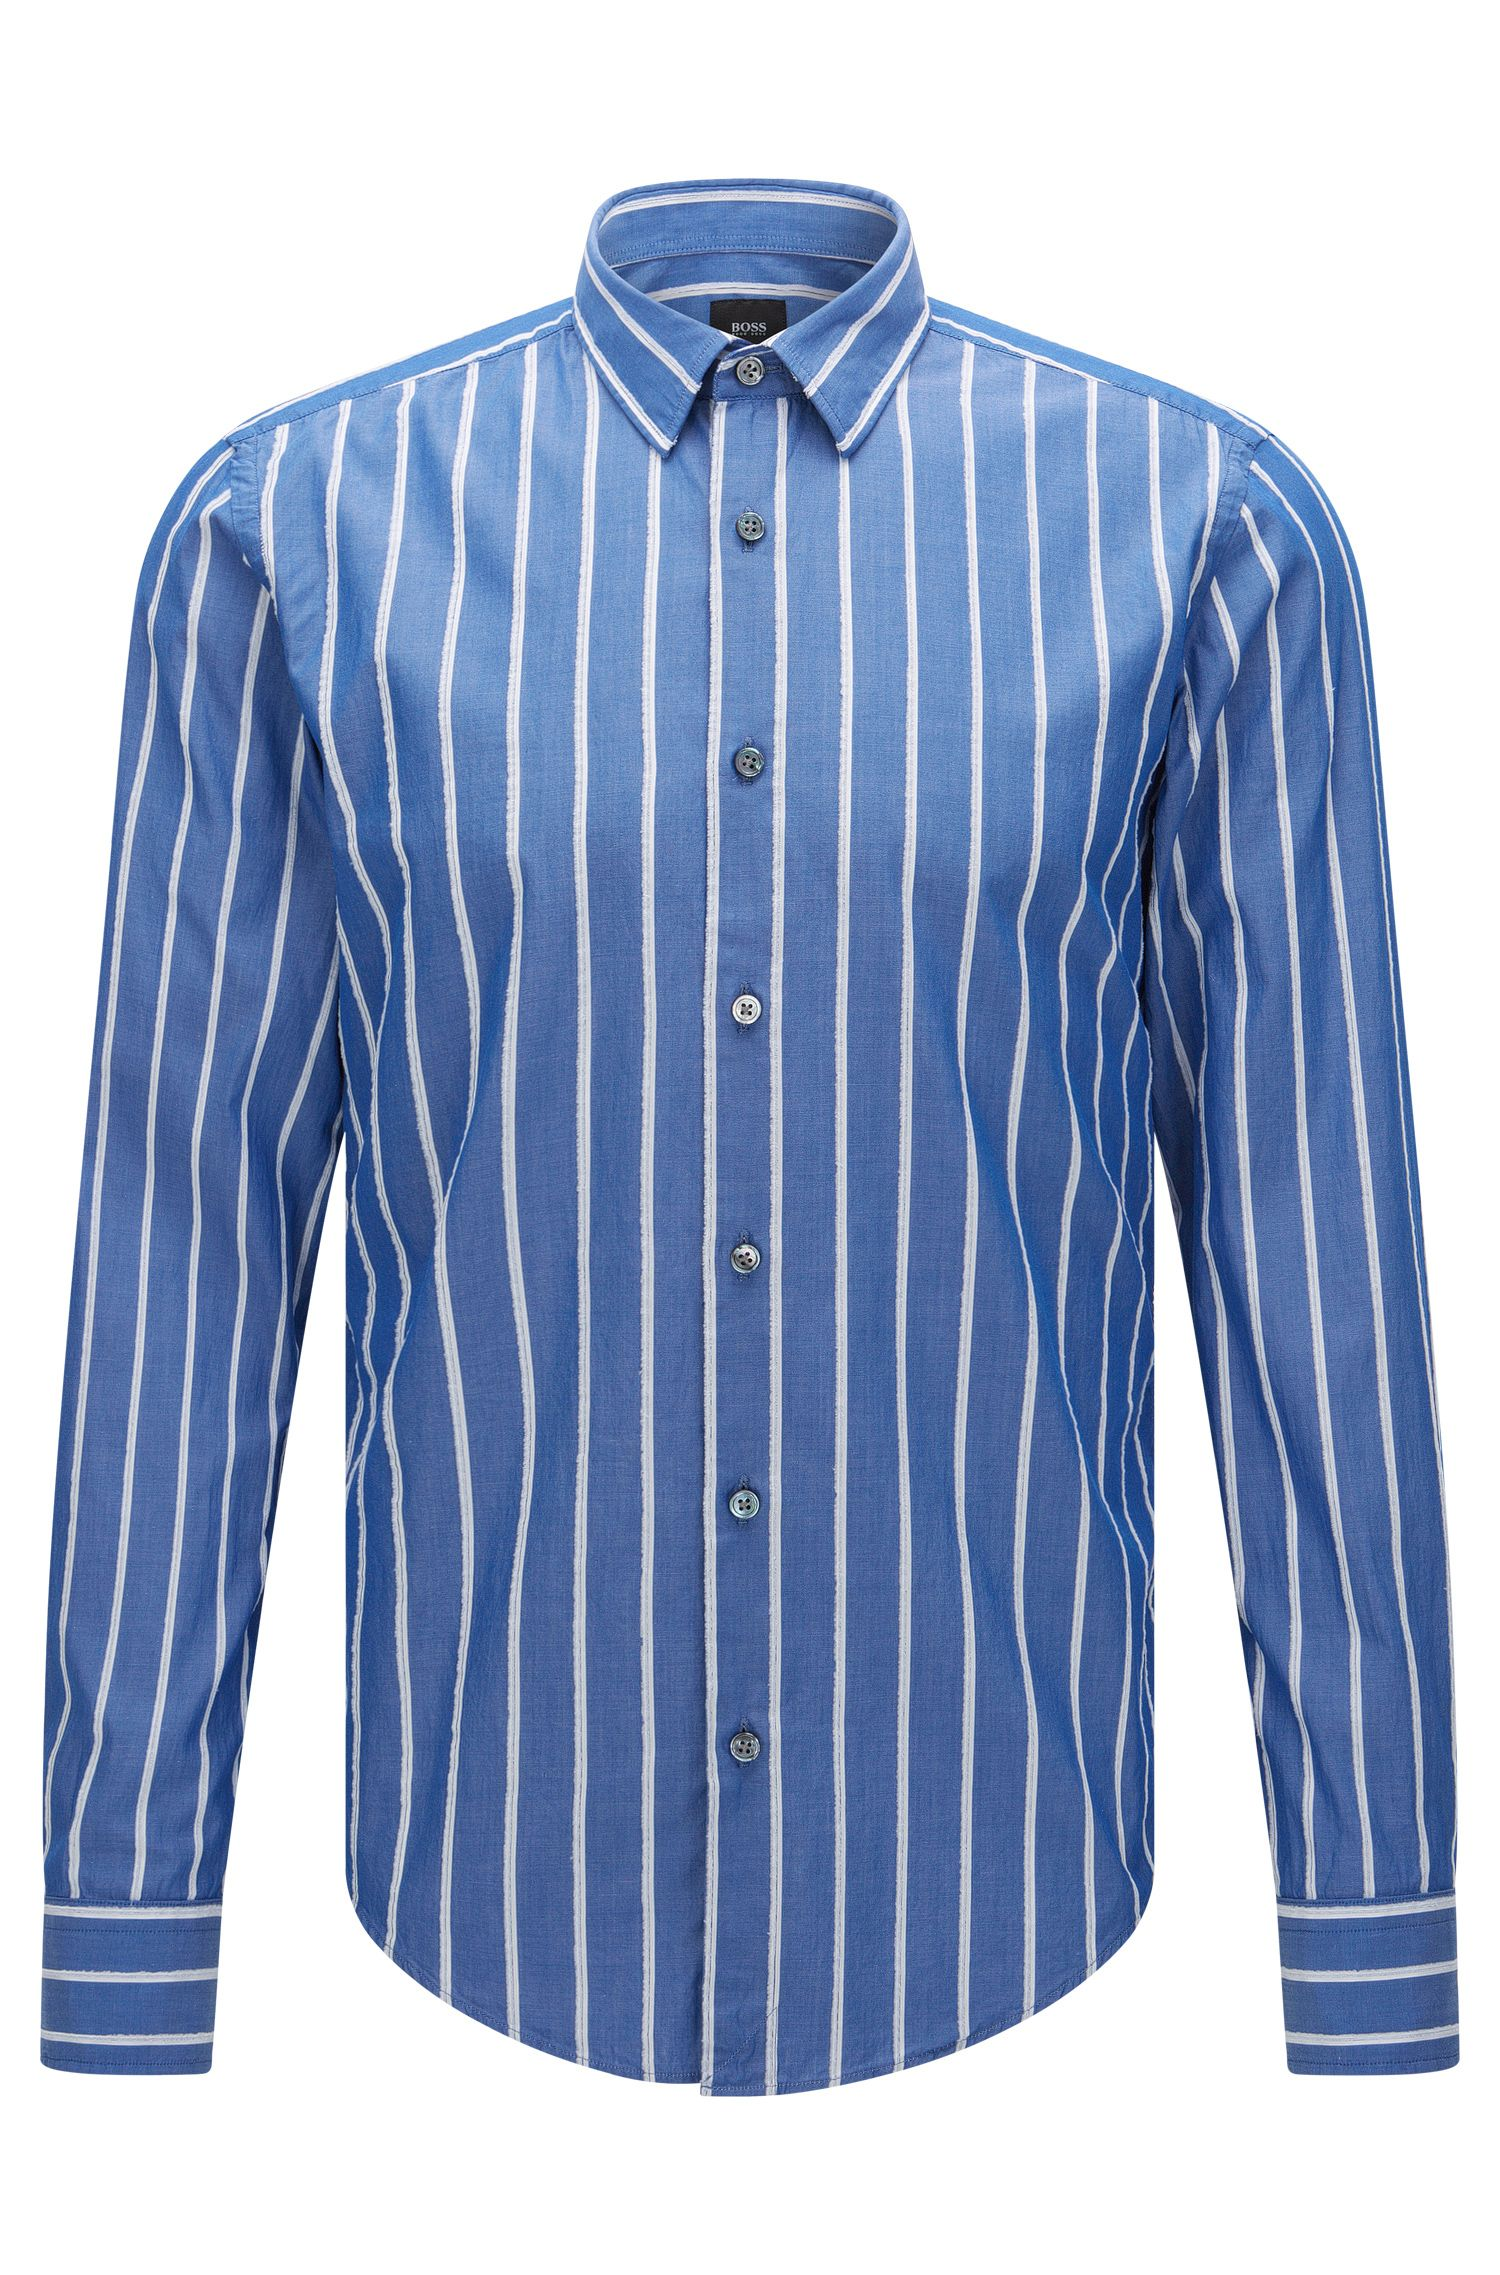 'T-Riccardo F' | Slim Fit, Italian Cotton Button Down Shirt